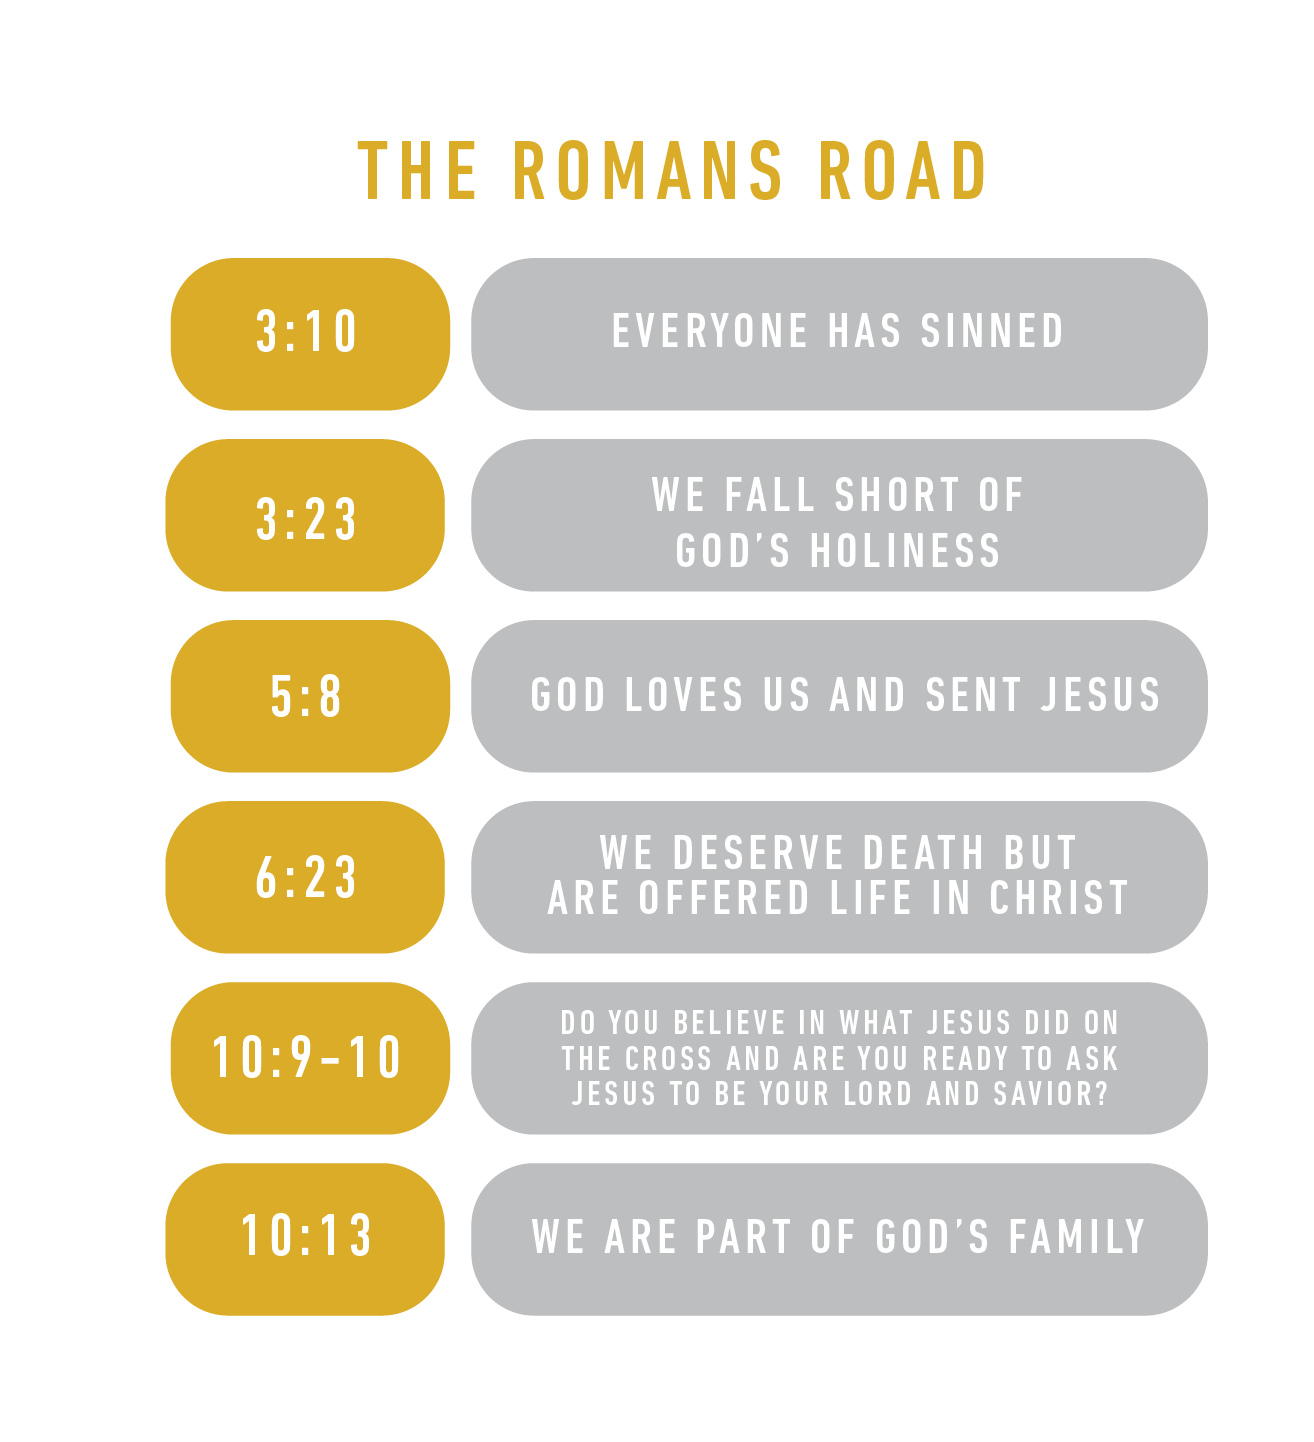 romans.road-01.png